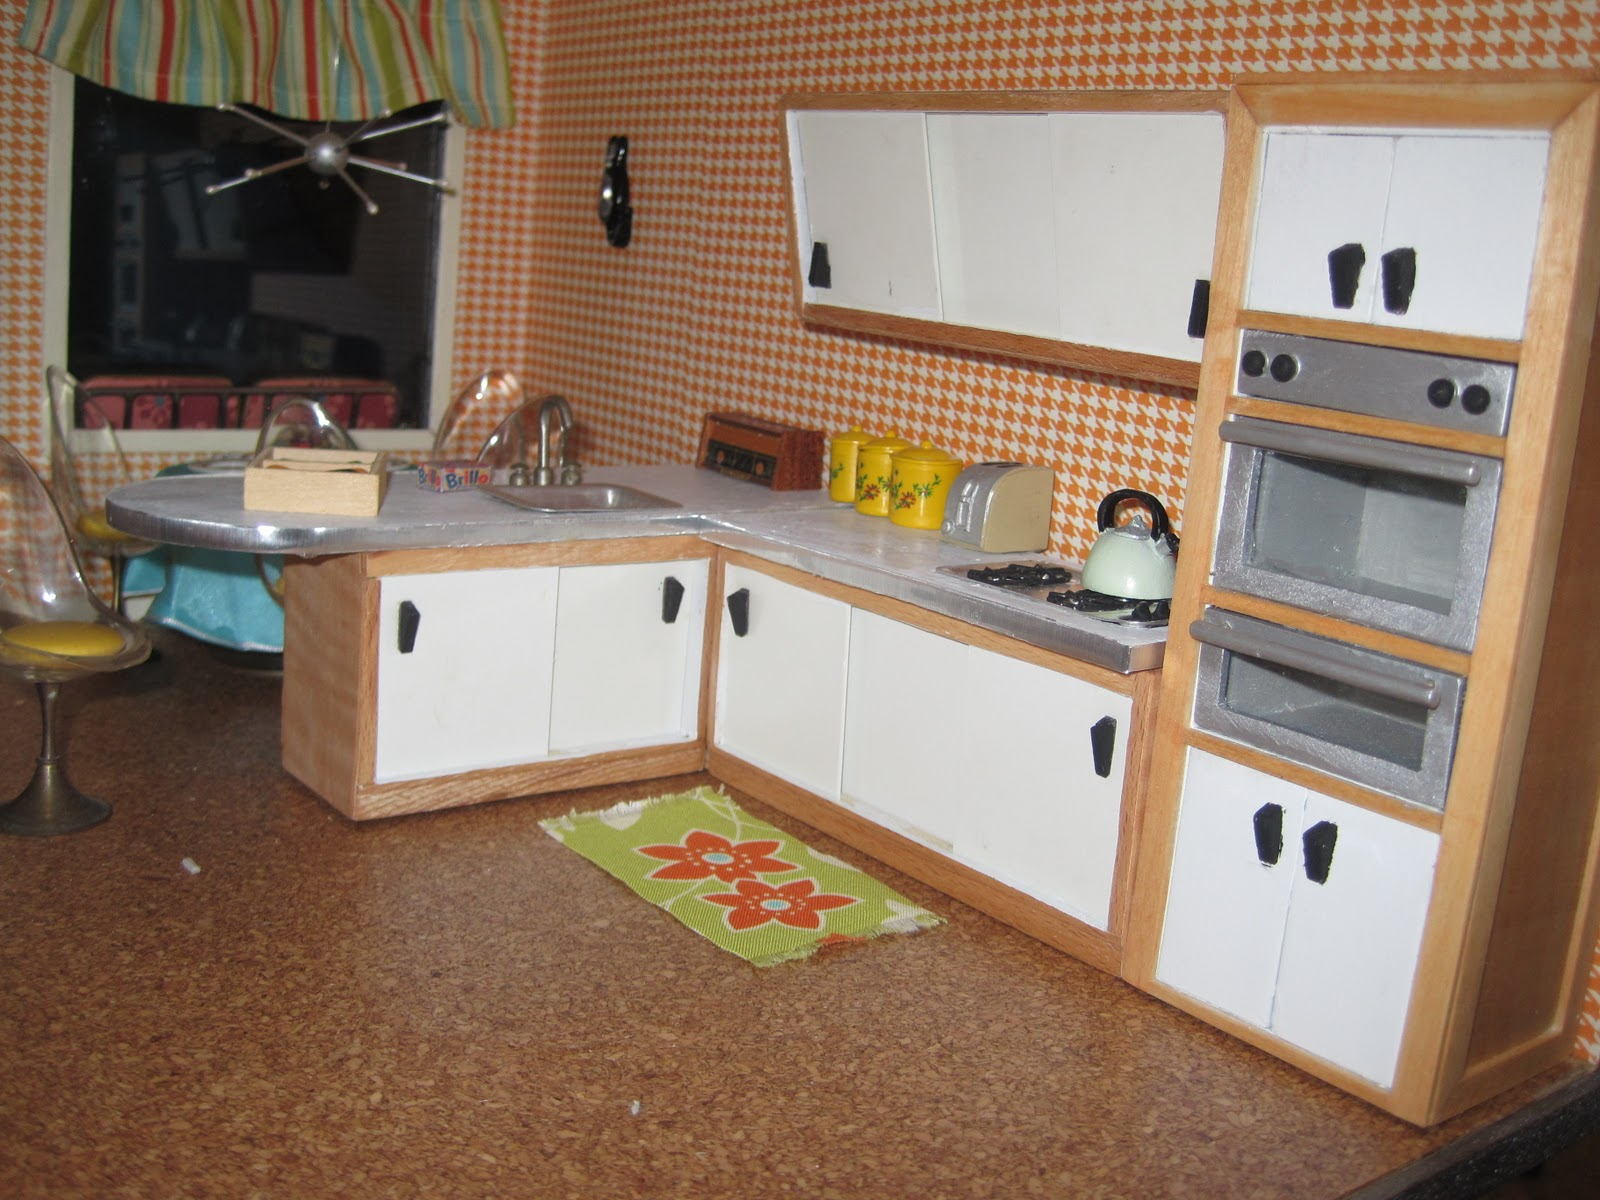 Kitchen cabinets for dollhouse - I Cut The Larger Piece Apart To Make An Upper And Lower Cabinet I Sanded Veneered And Sanded Some More To Turn The Pieces Into This